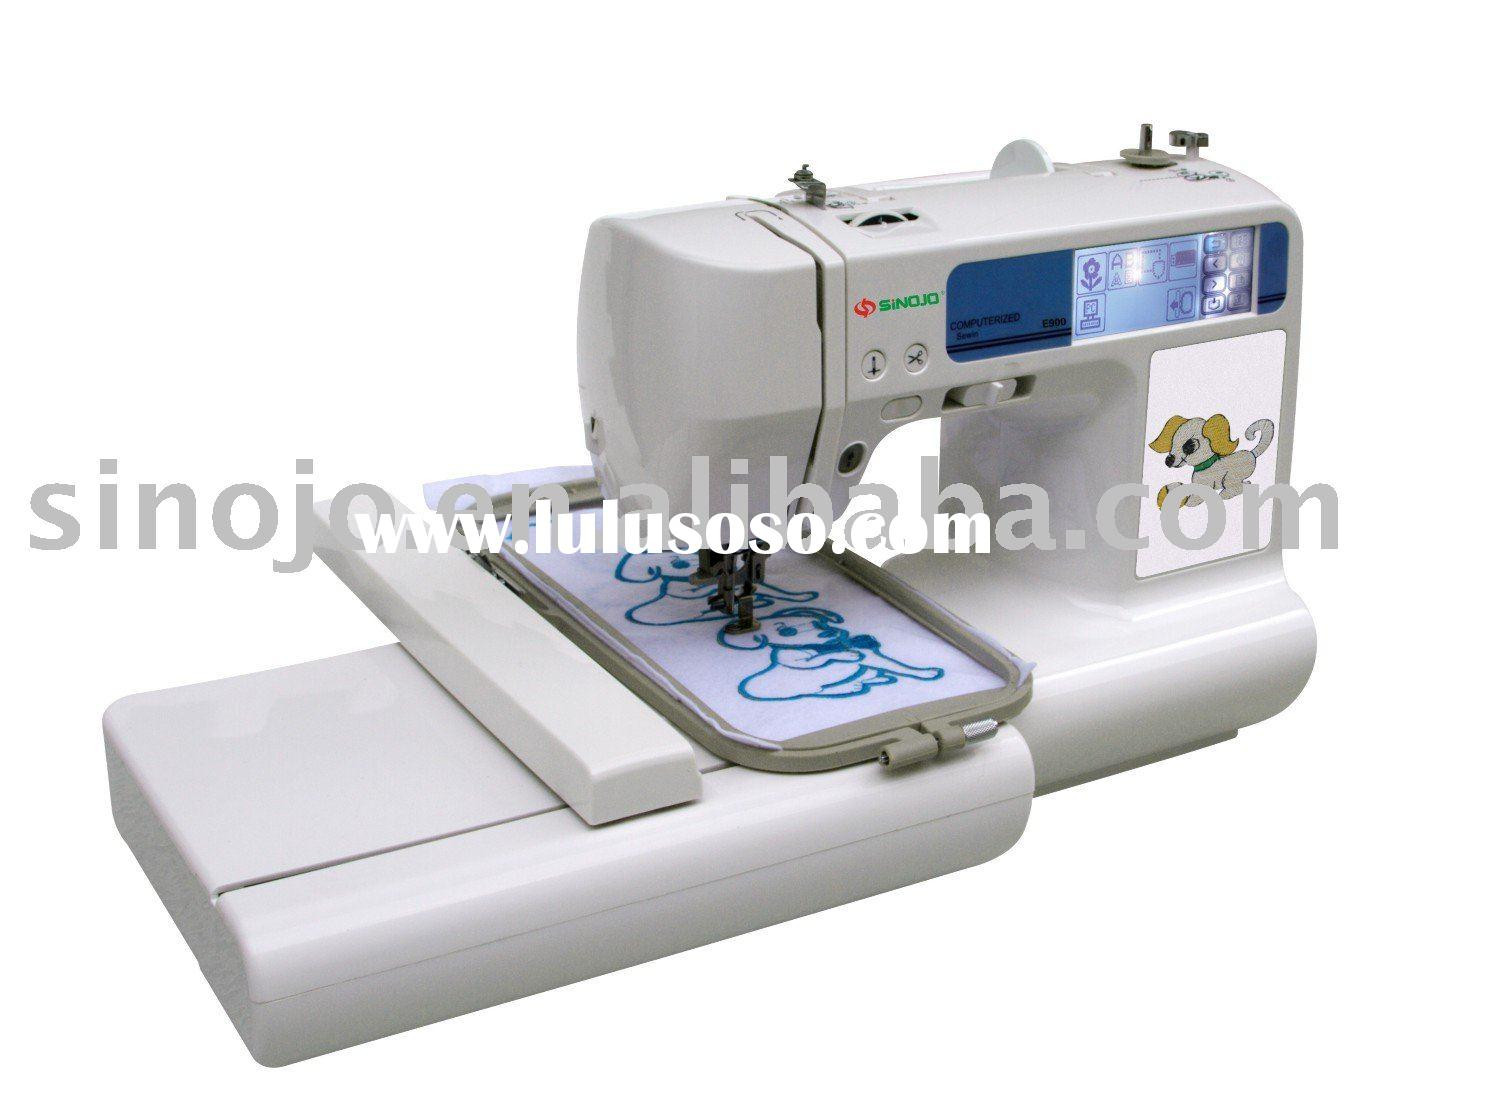 Used Embroidery Machines Fresh Used Domestic Embroidery Machine Used Domestic Embroidery Of Contemporary 41 Images Used Embroidery Machines